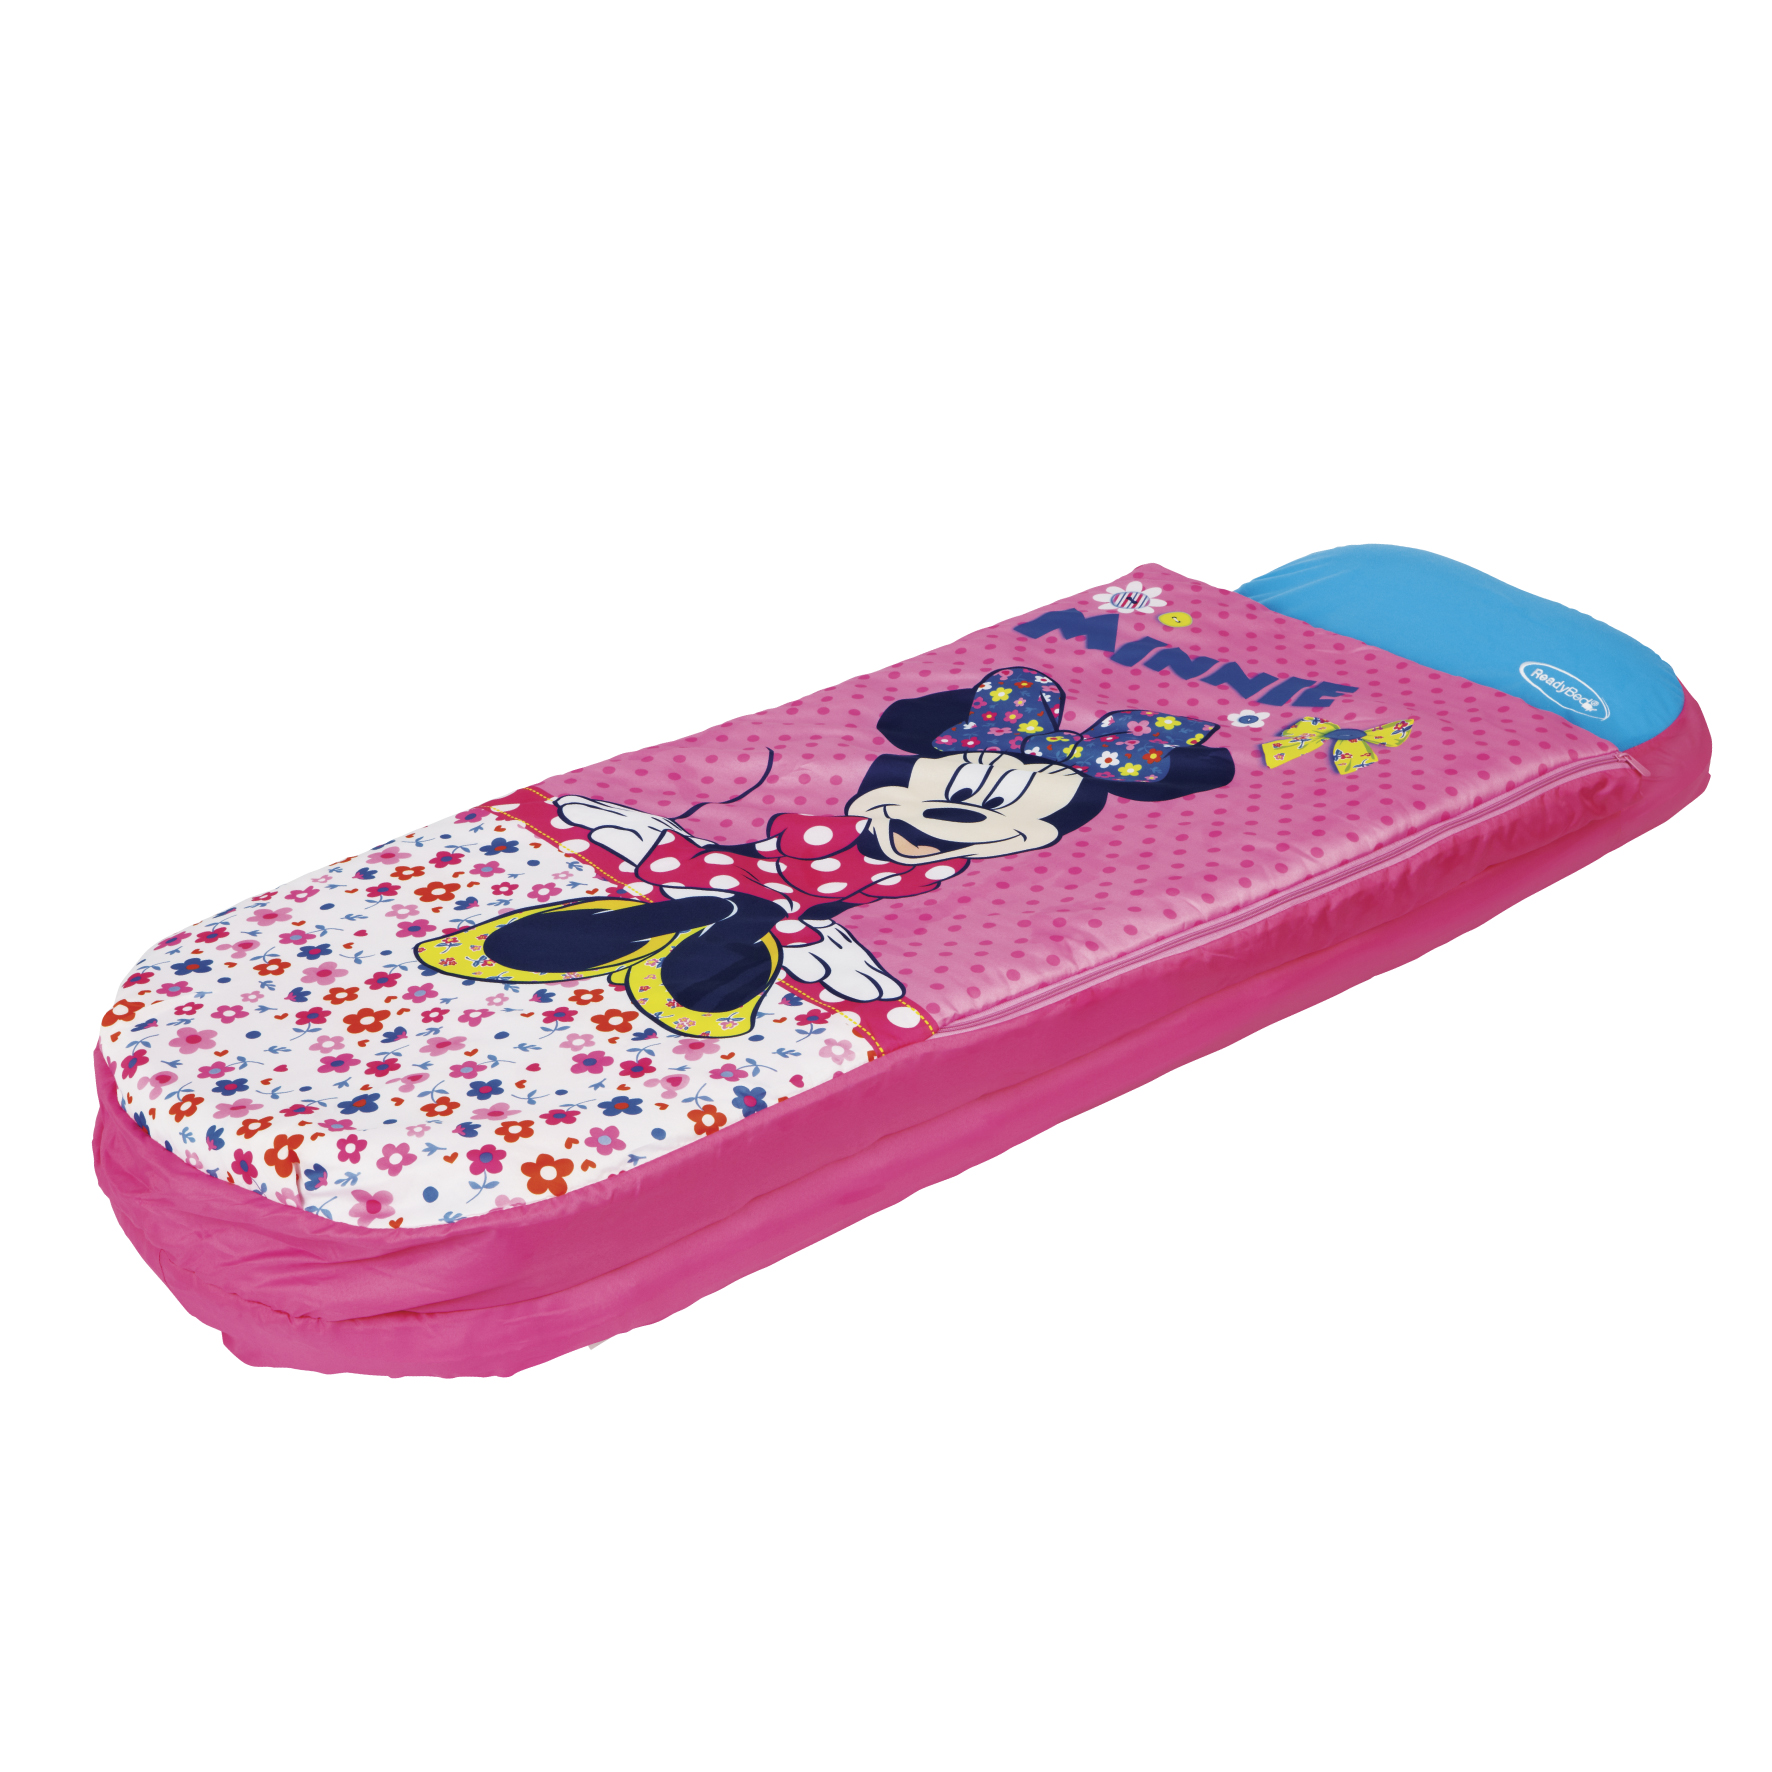 Inflatable bed for kids - Brand New Worlds Apart Childrens Junior Ready Portable